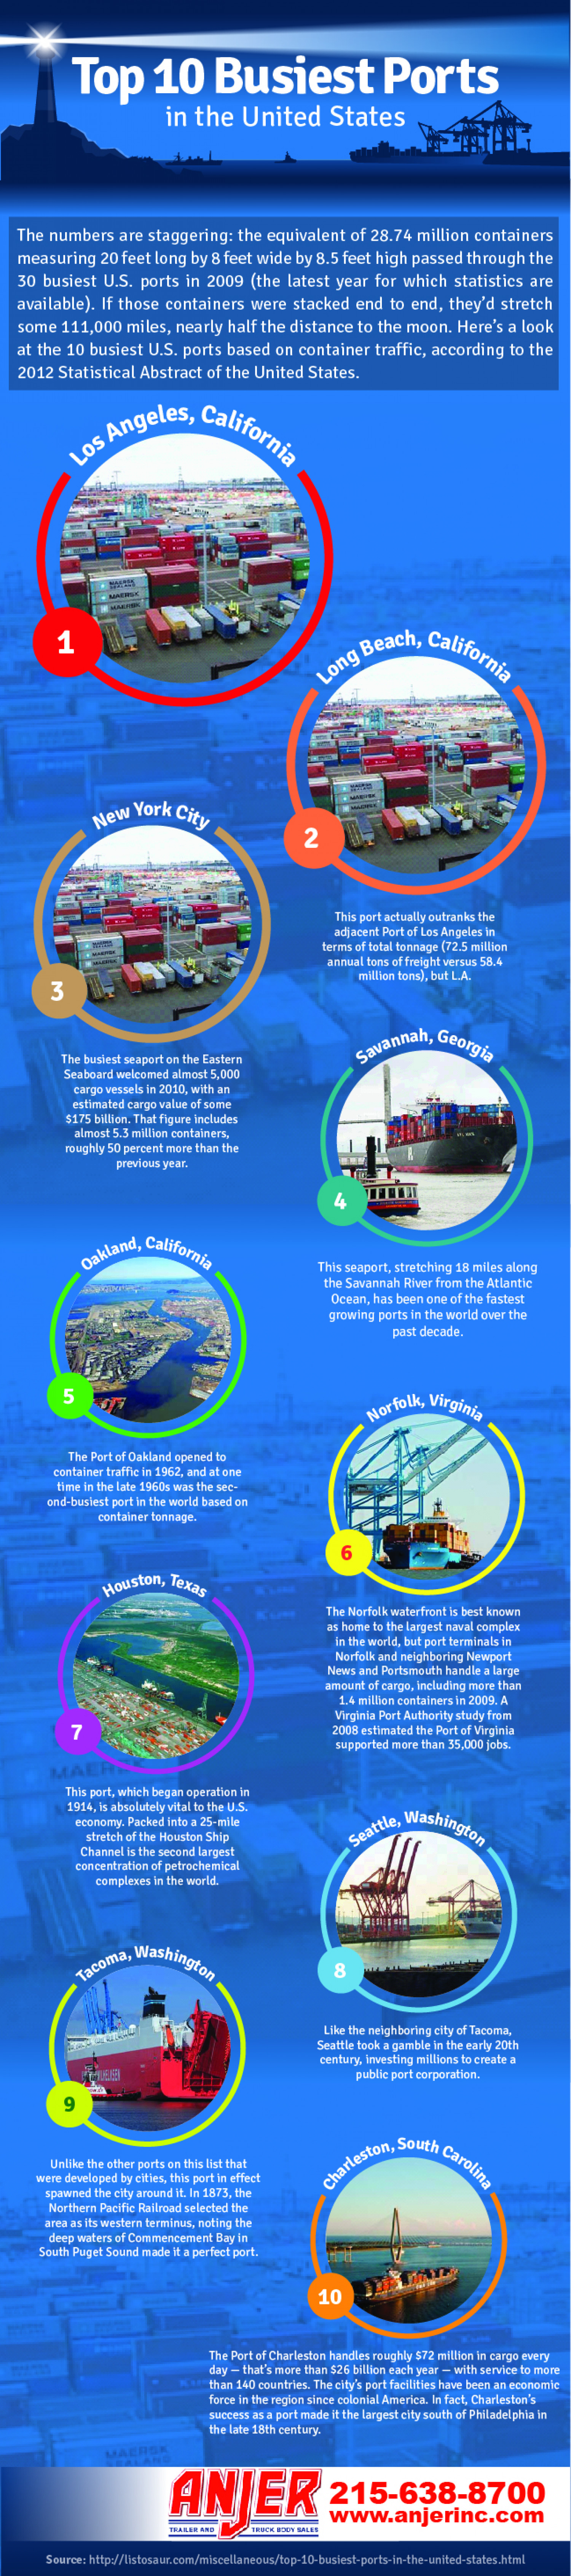 10 Busiest Ports in United States Infographic